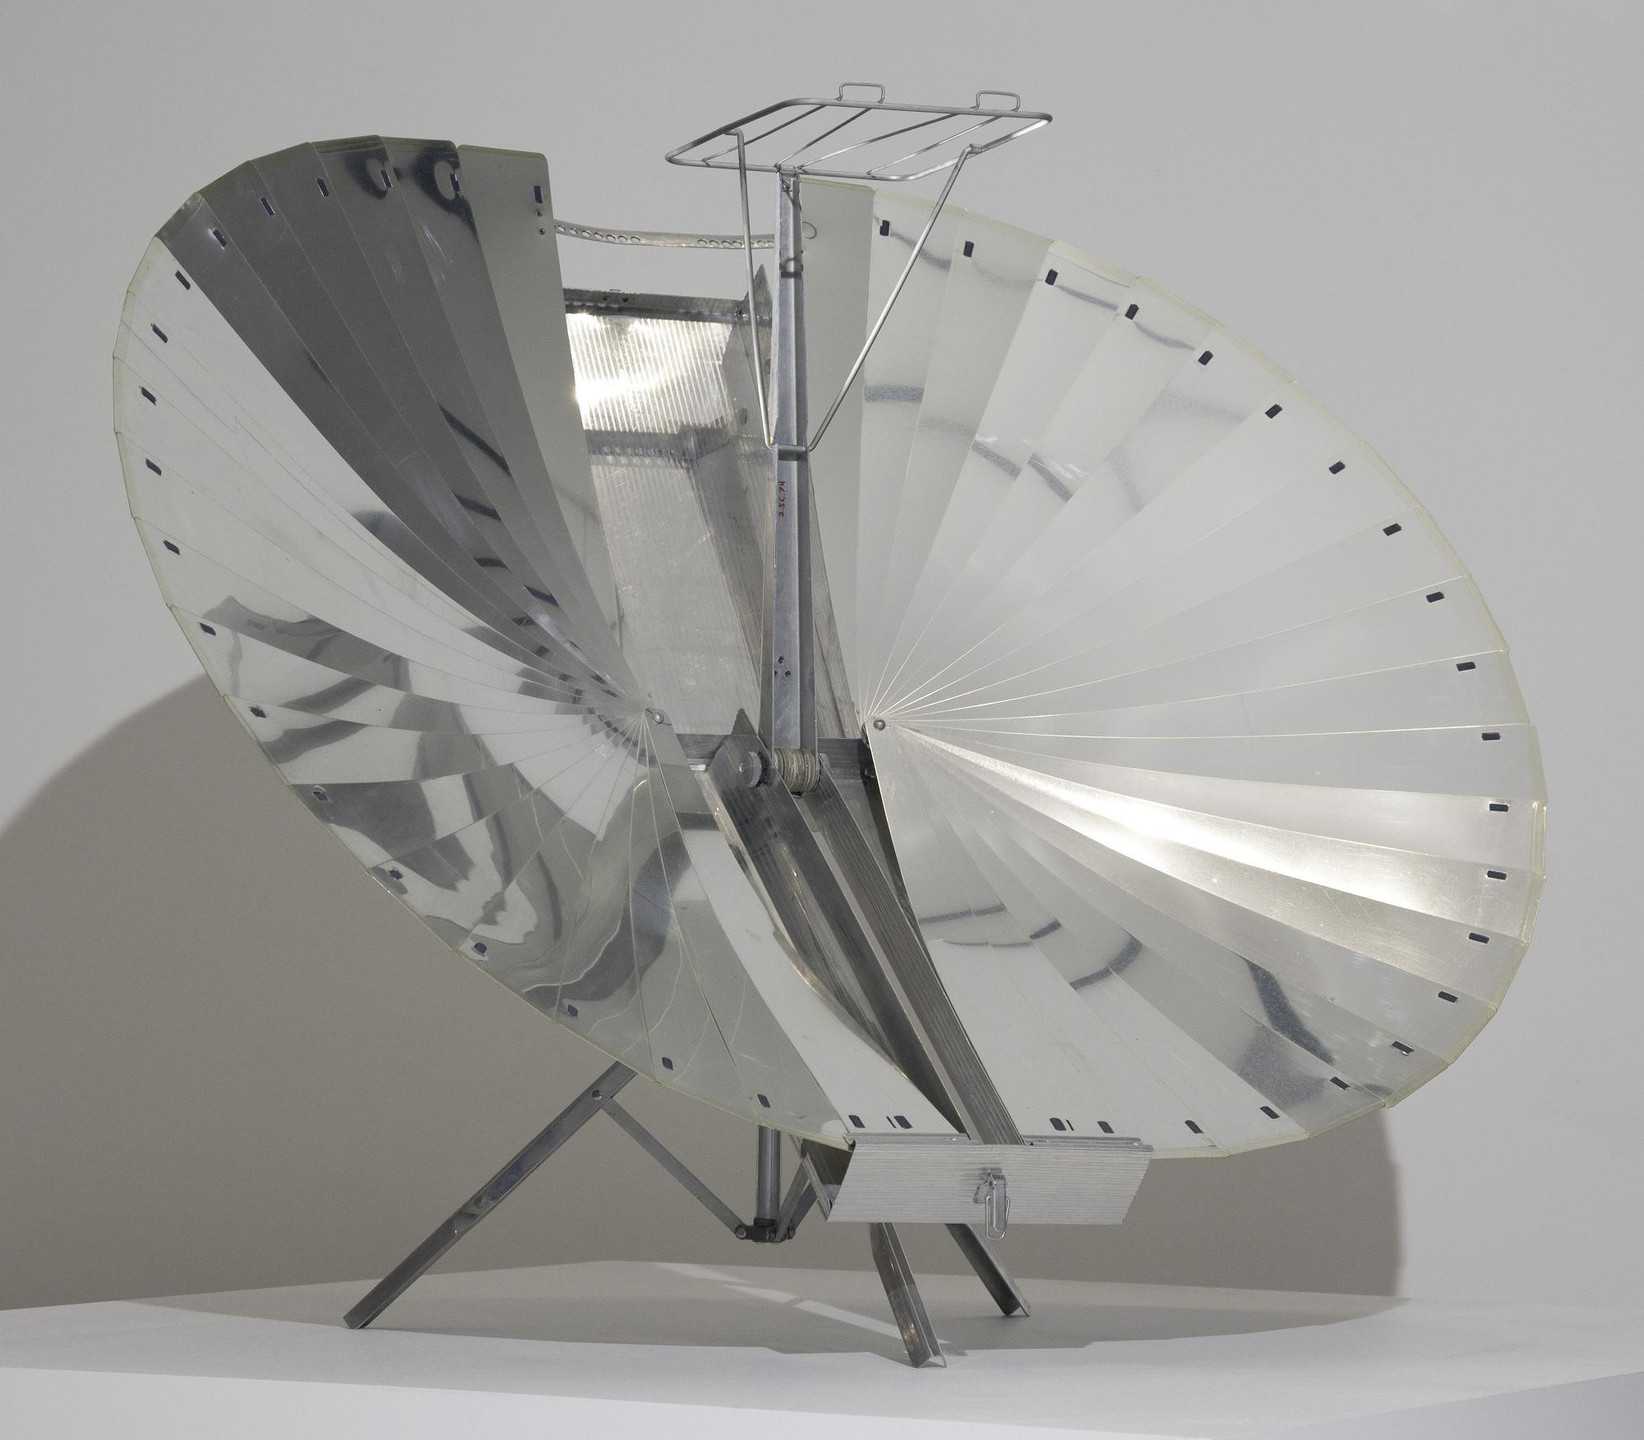 Dr. Adnan Tarcici. Solnar Tarcici Collapsible Solar Cooker. c.1970